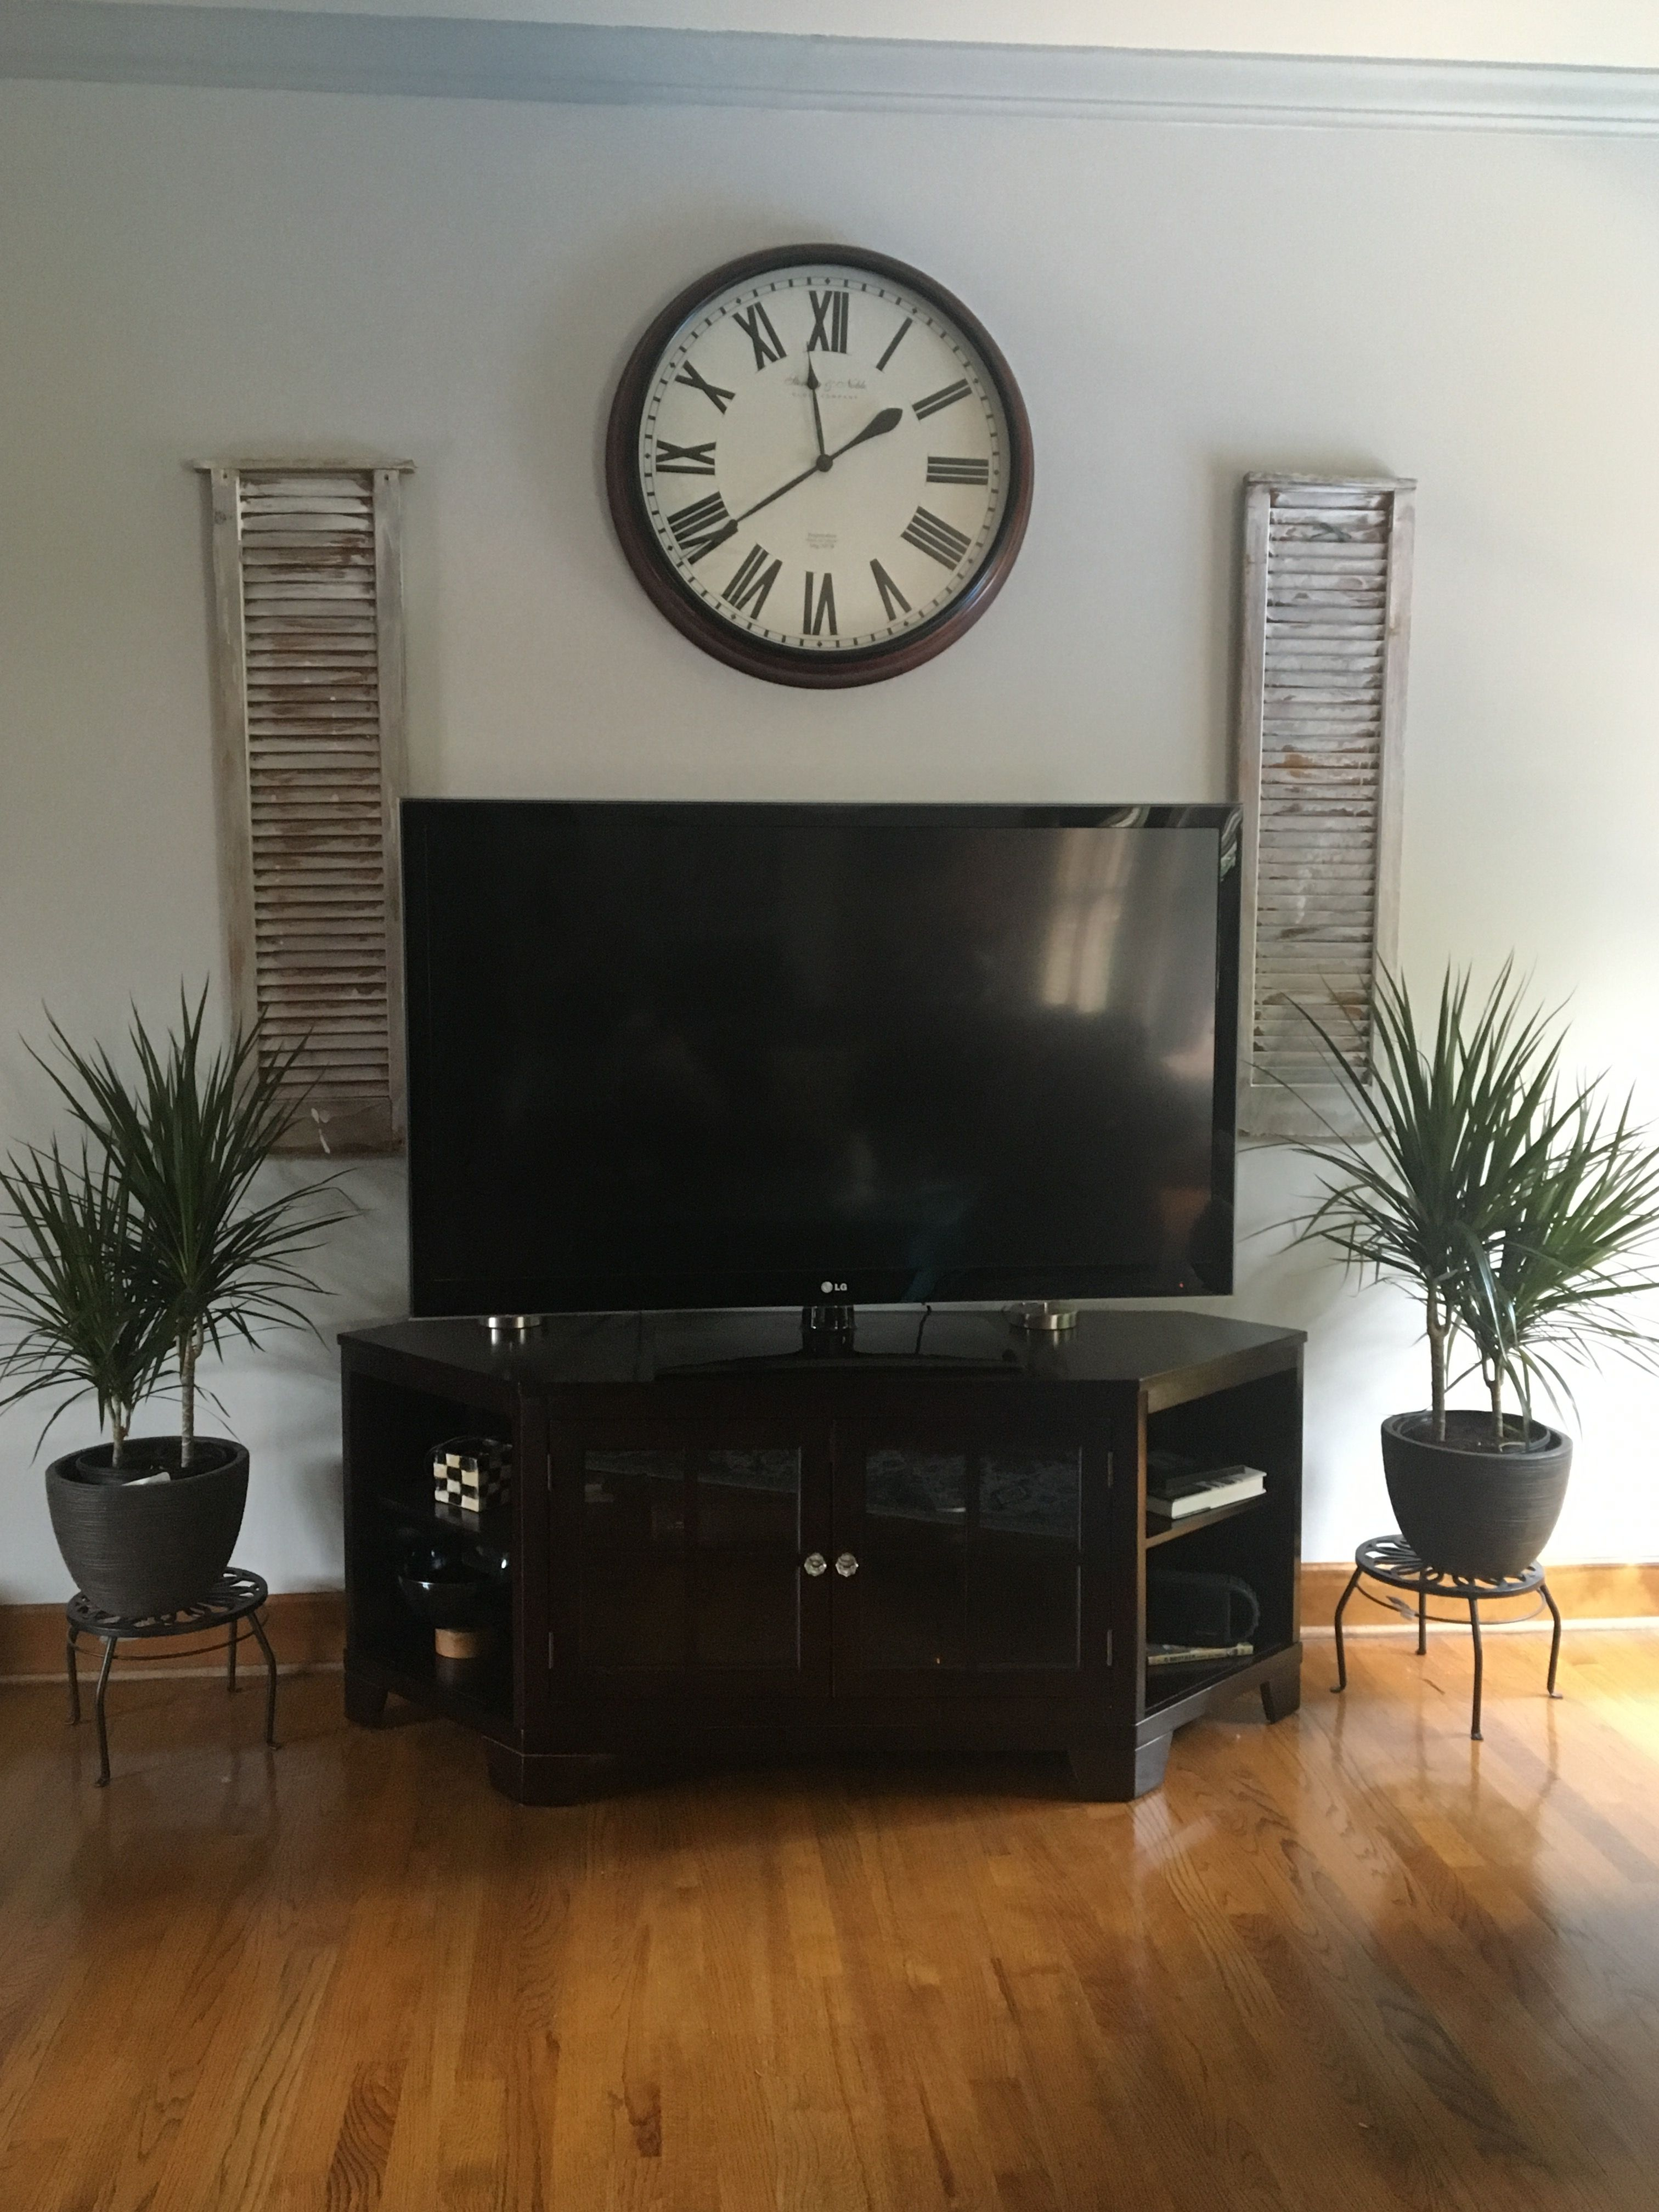 Decorating Around A Tv Stand Wood Shutters And Air